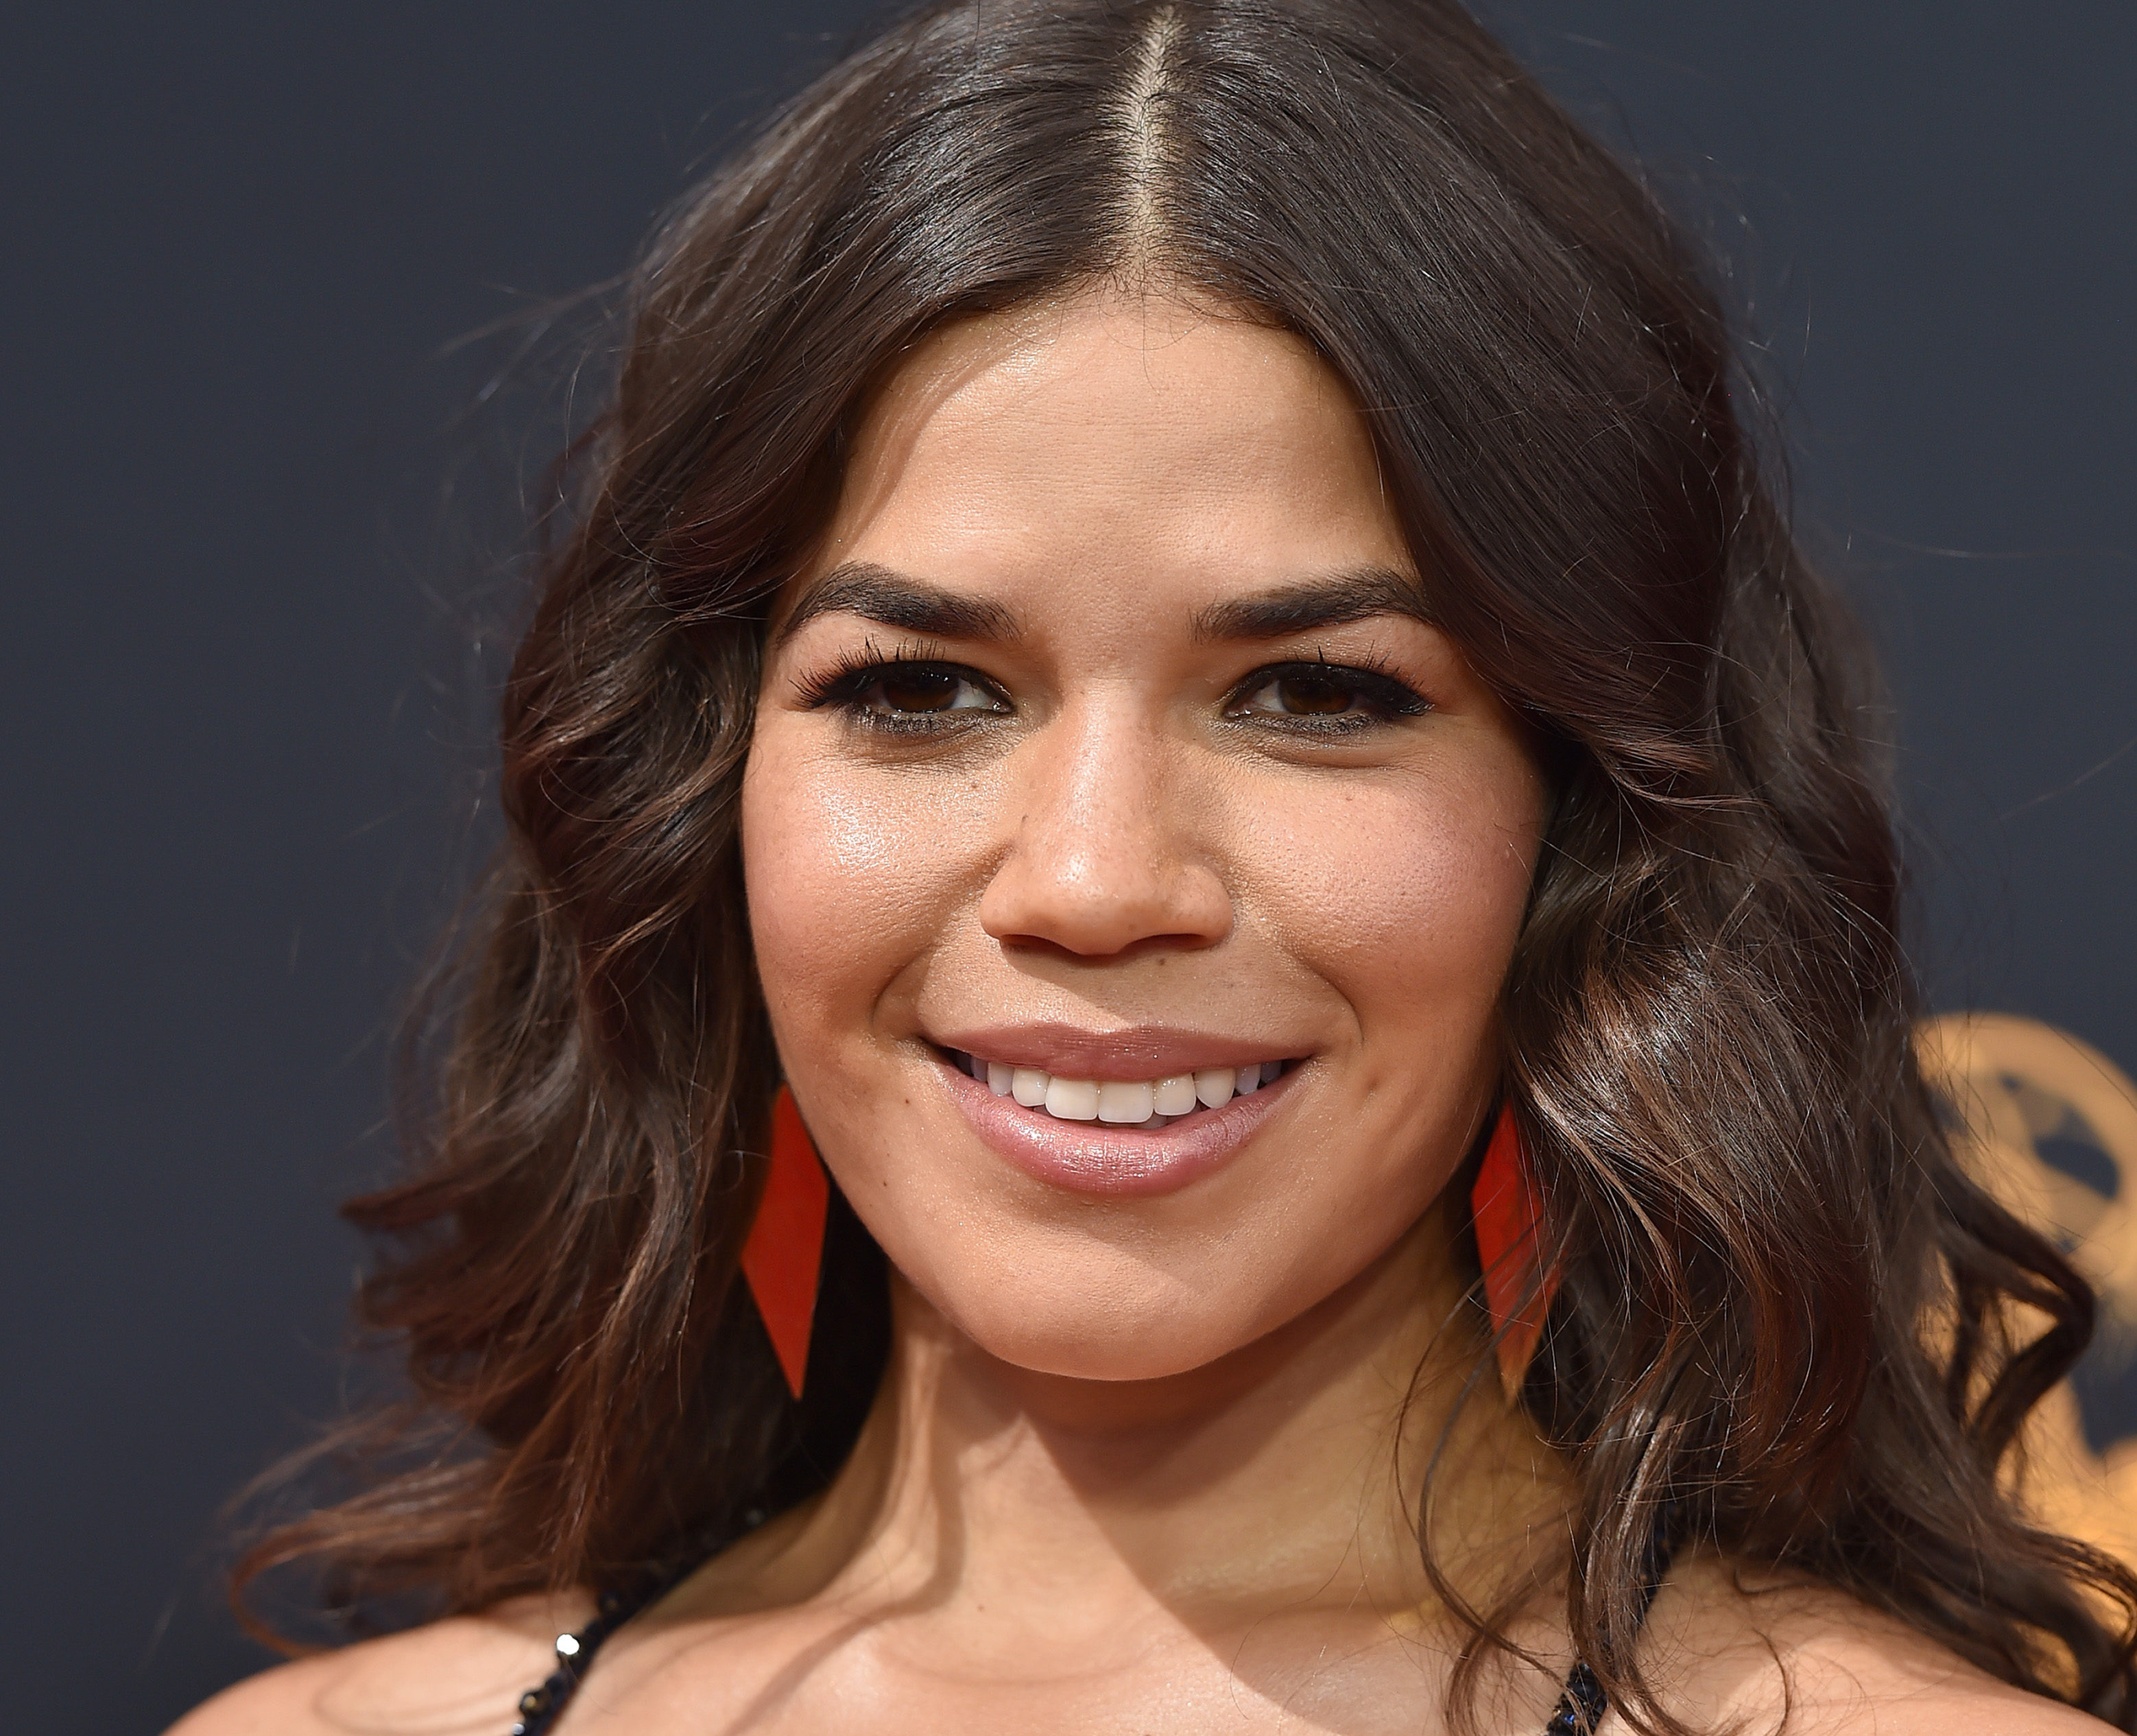 America Ferrera just completely changed her hair – and AHHH it's so pretty!